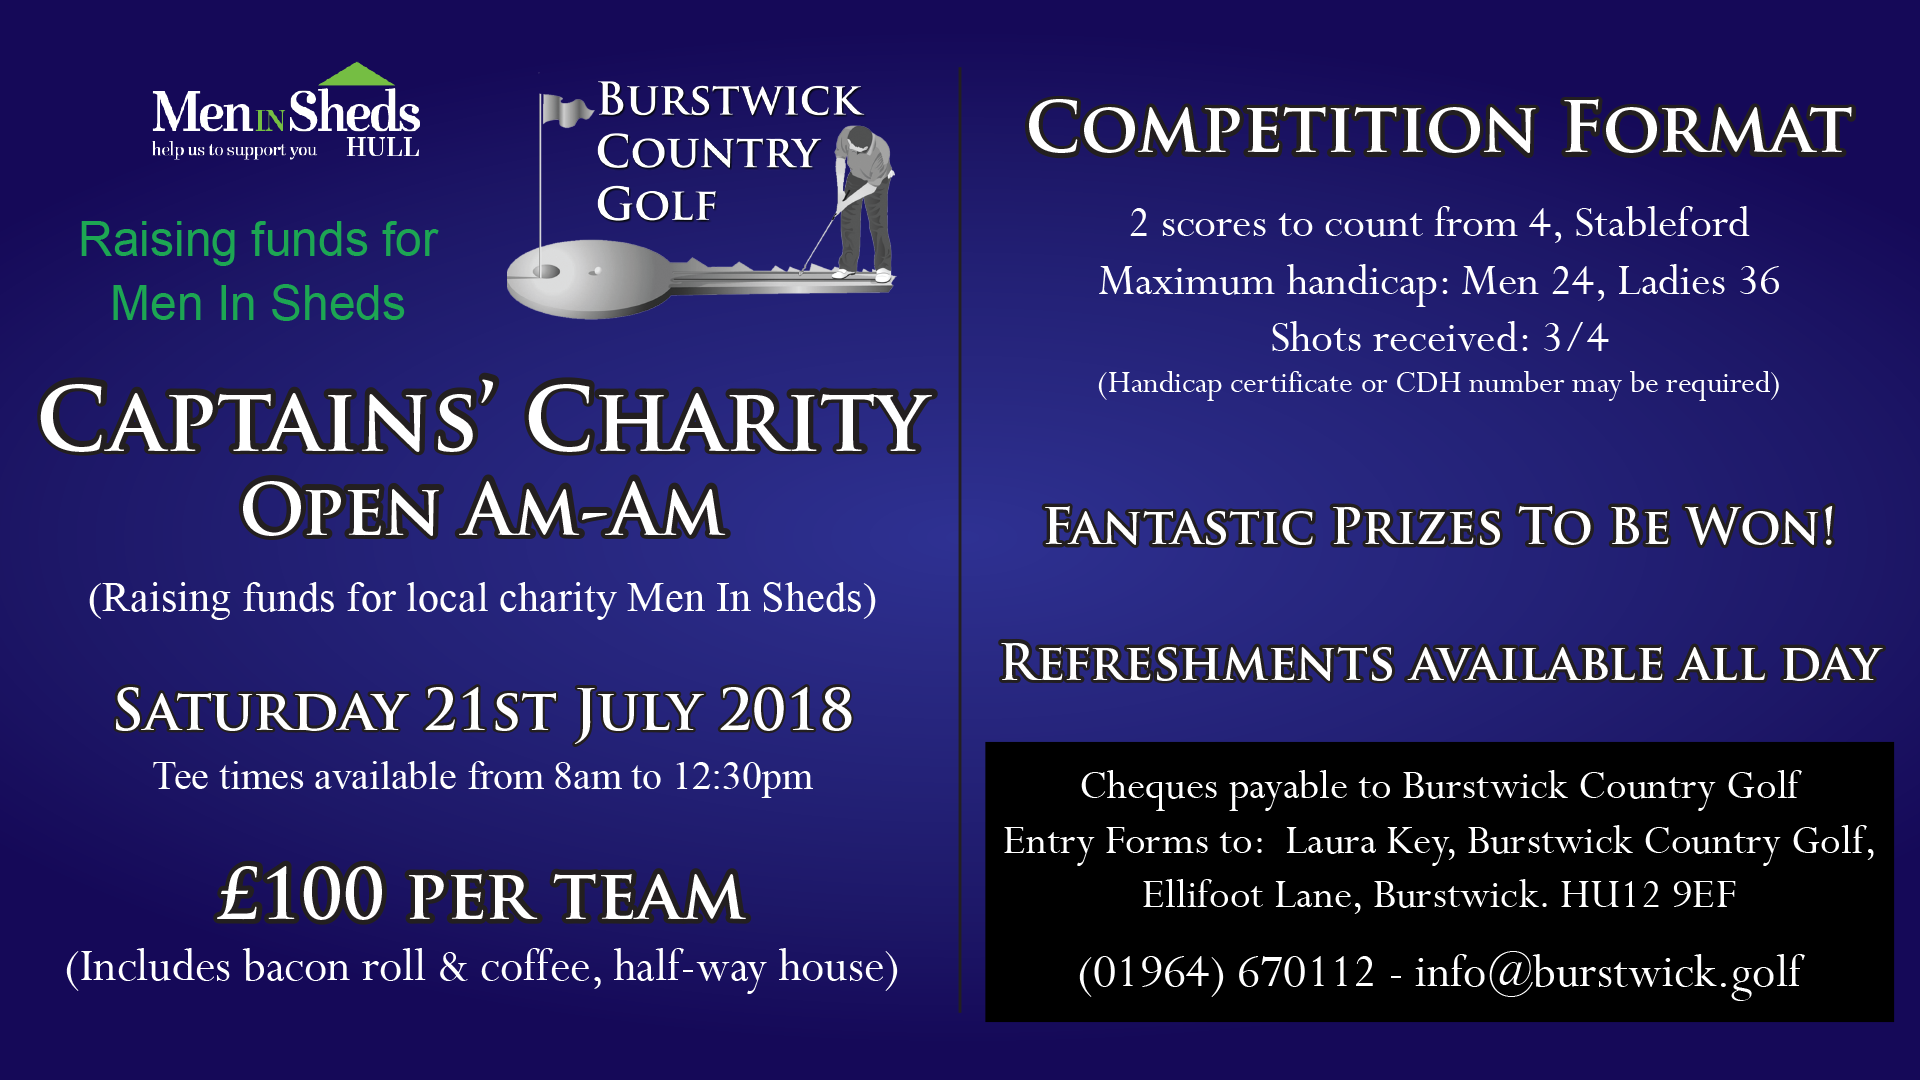 Charity Open Am-Am